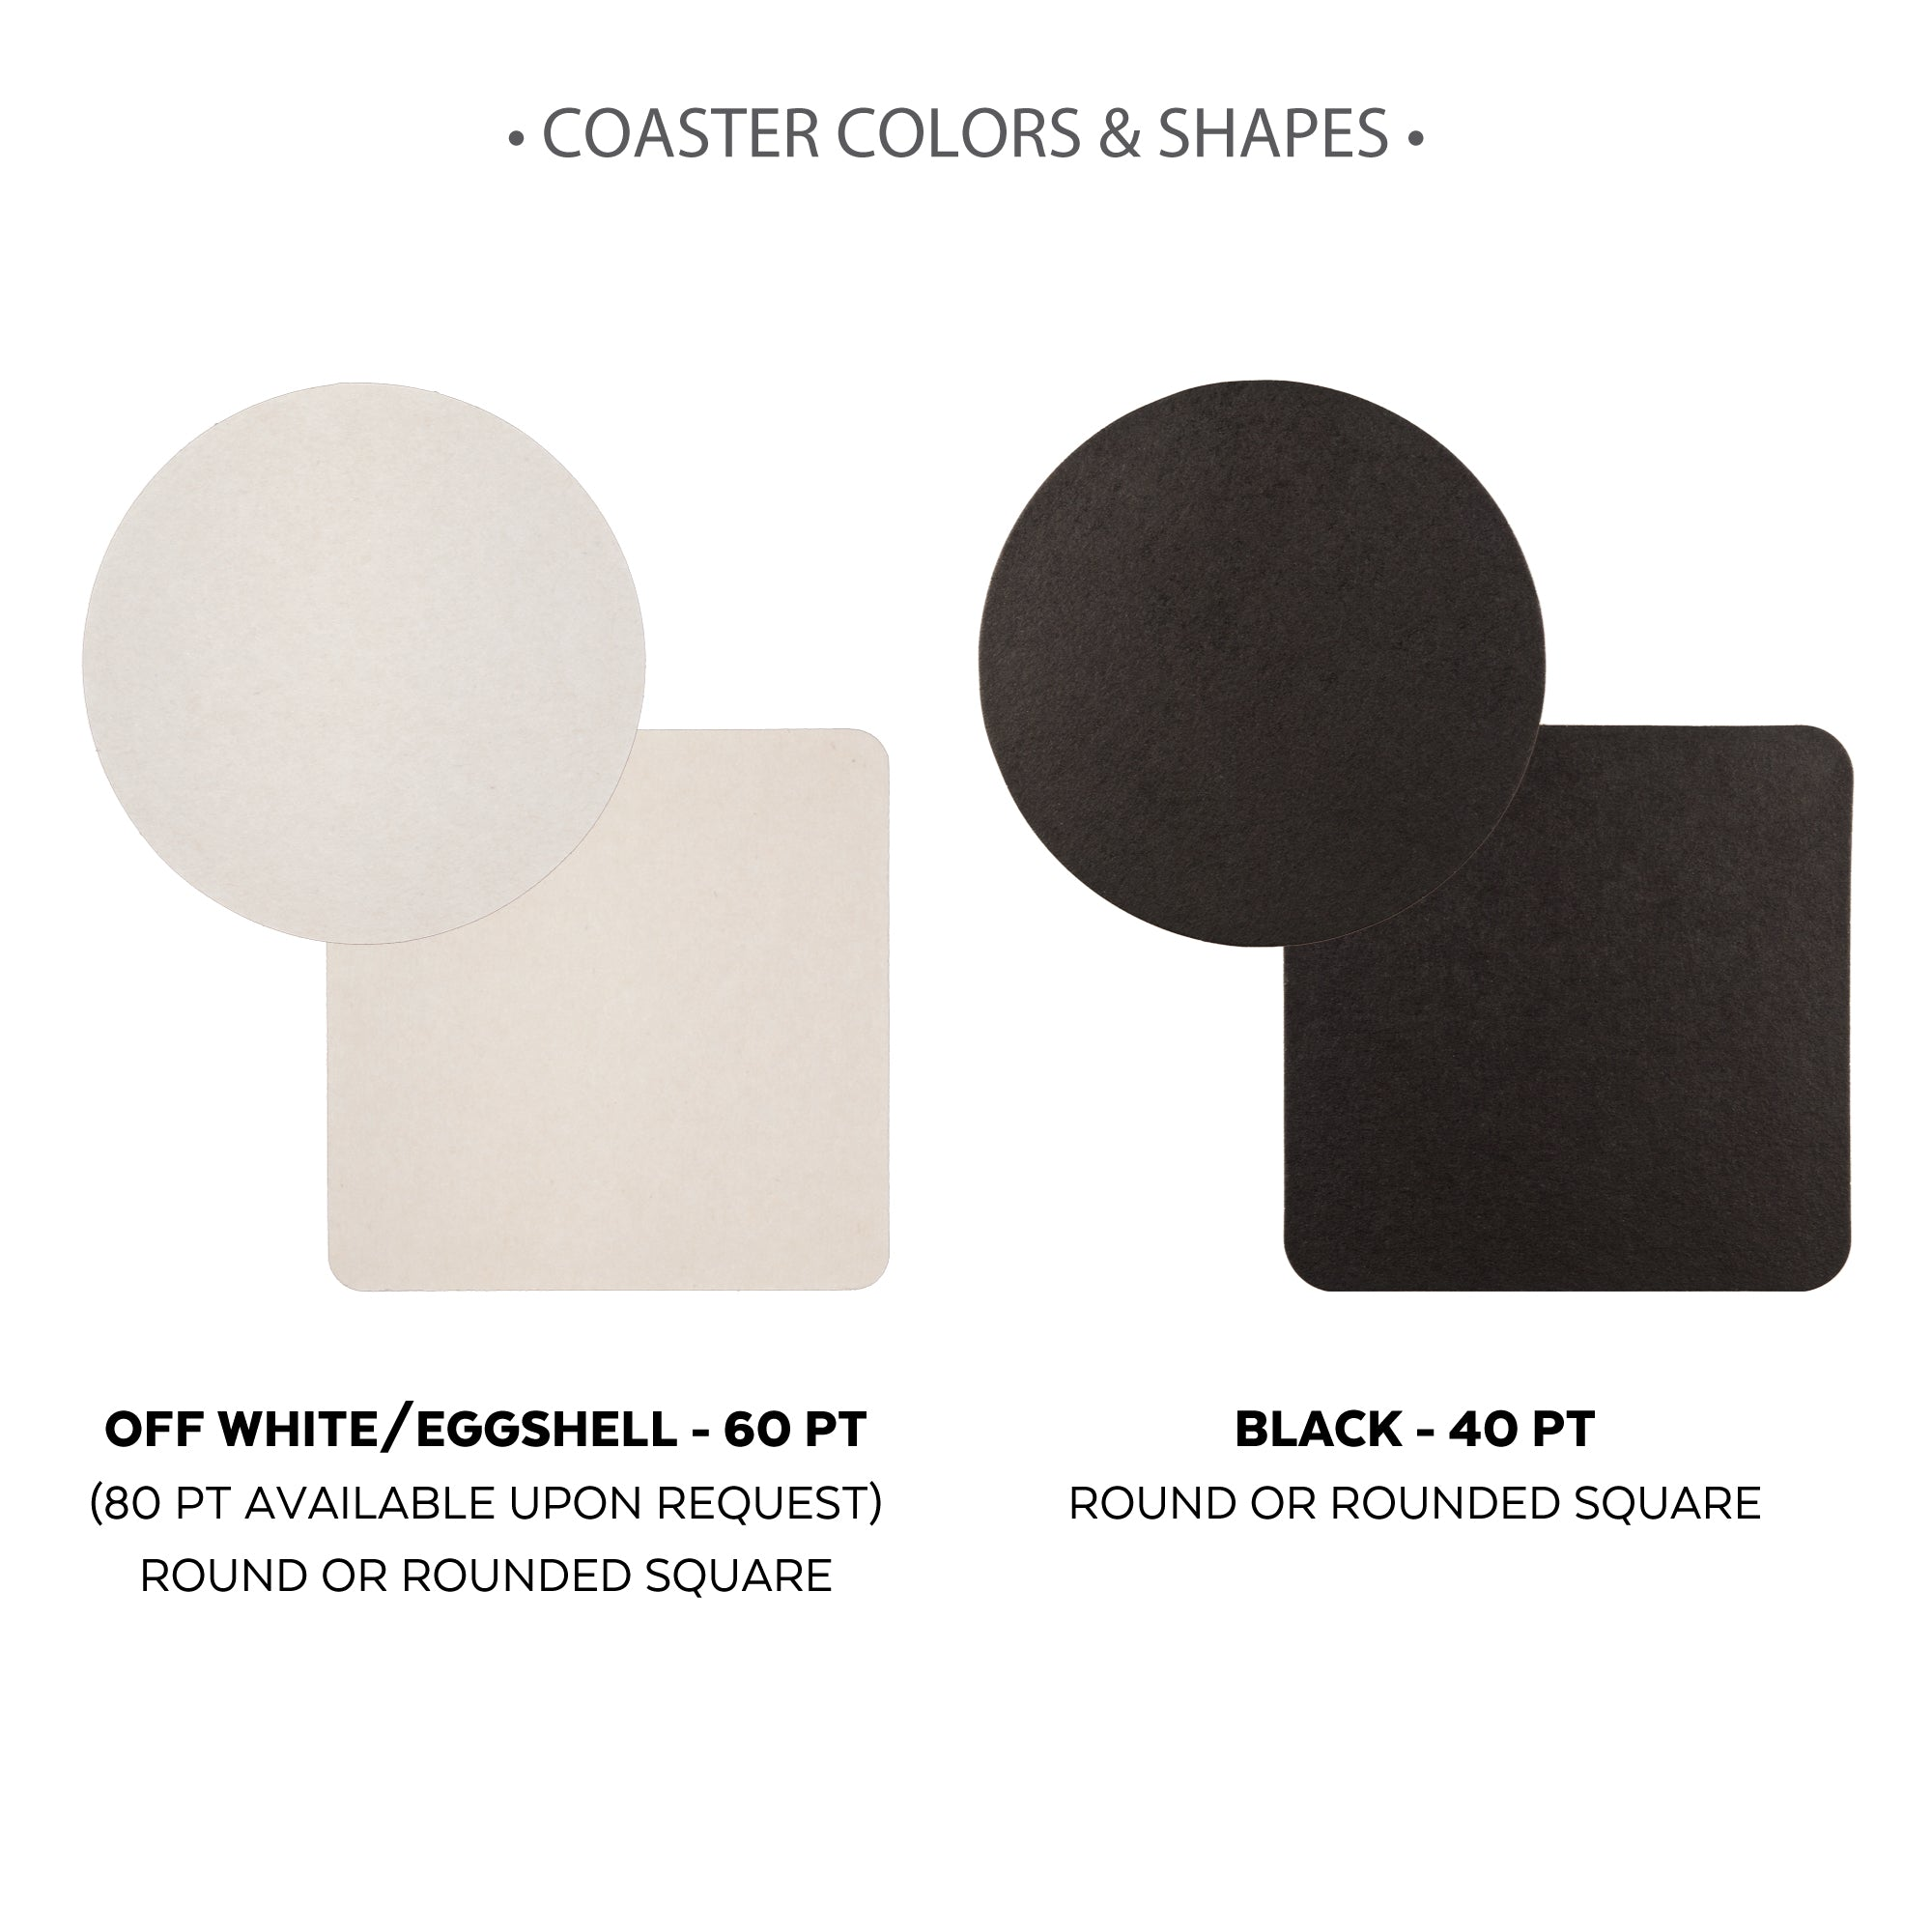 coaster shapes and colors